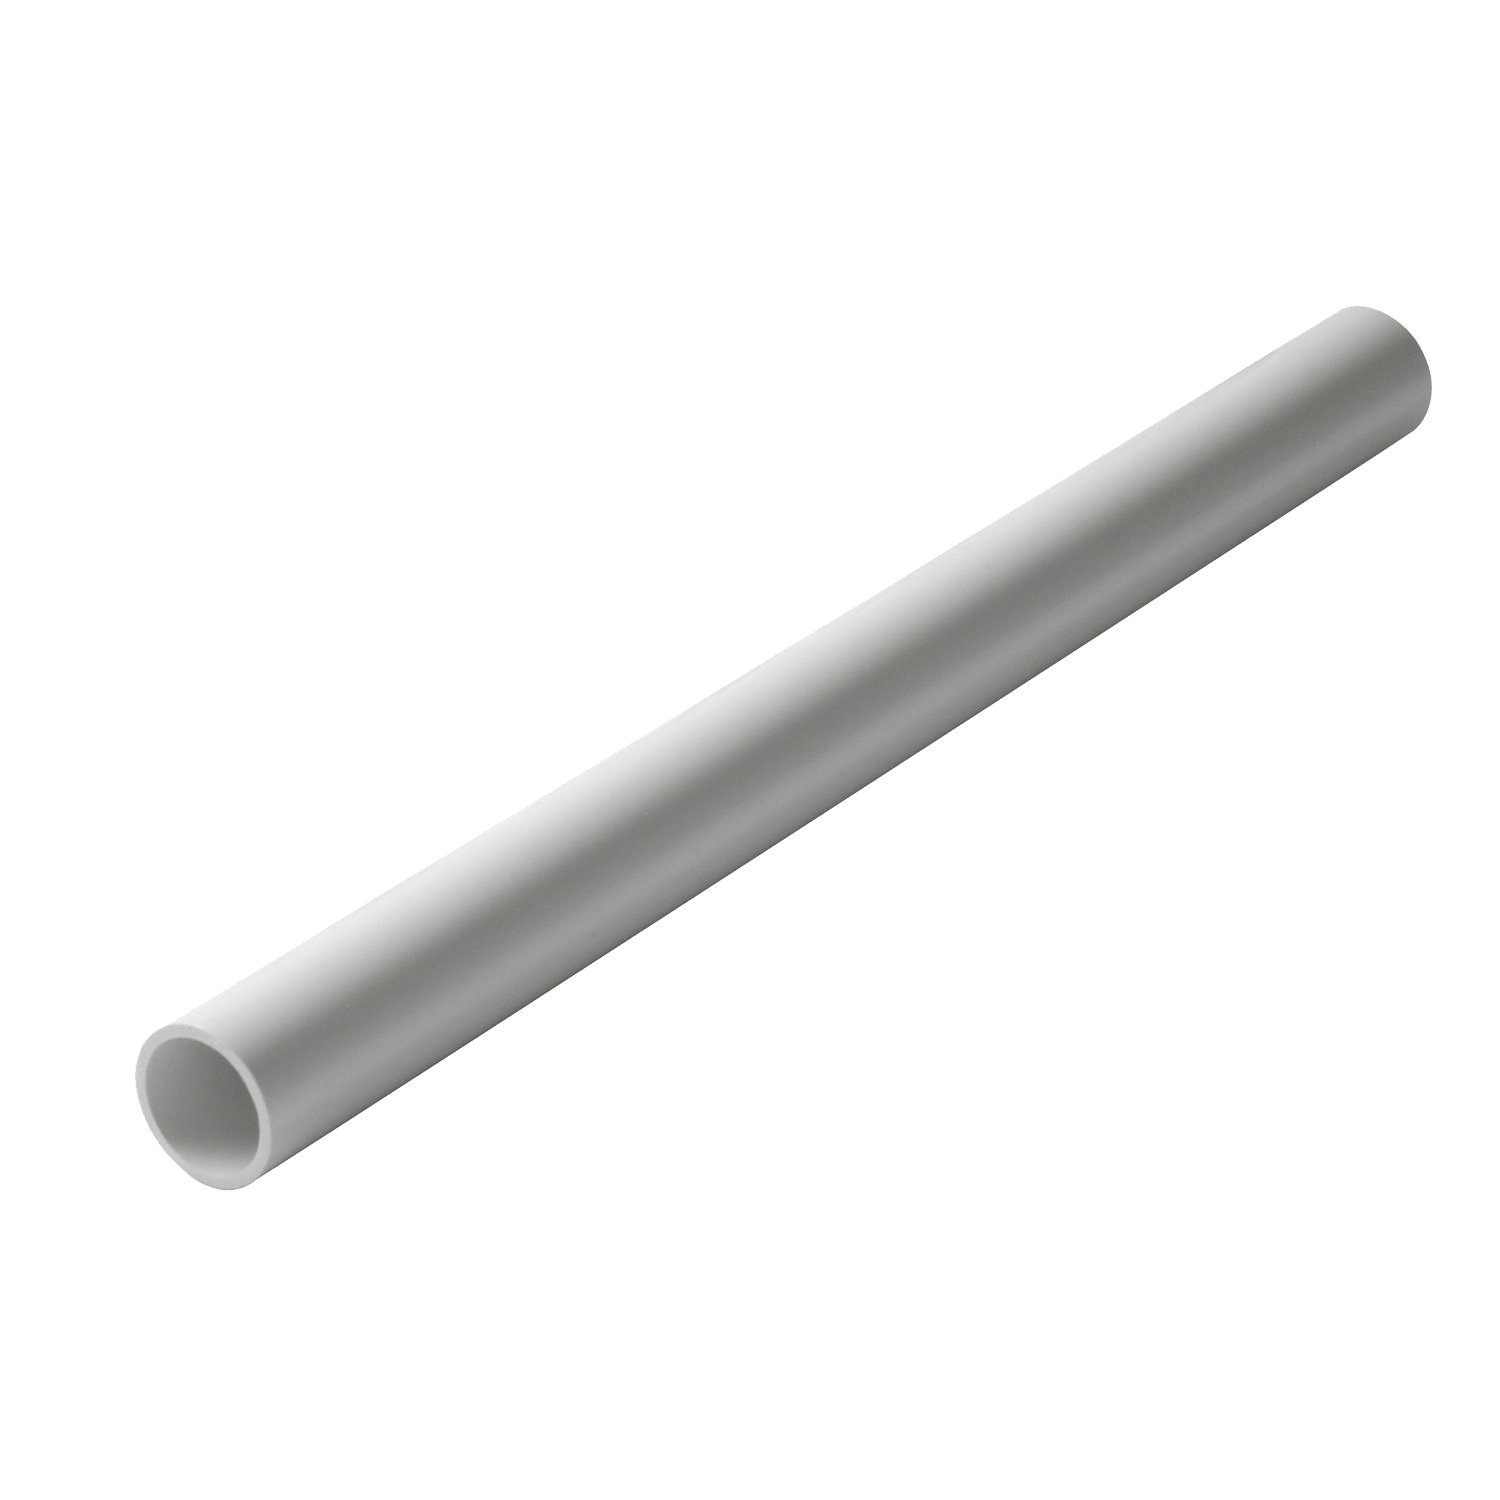 Pvc pipe png. Piping sch white h